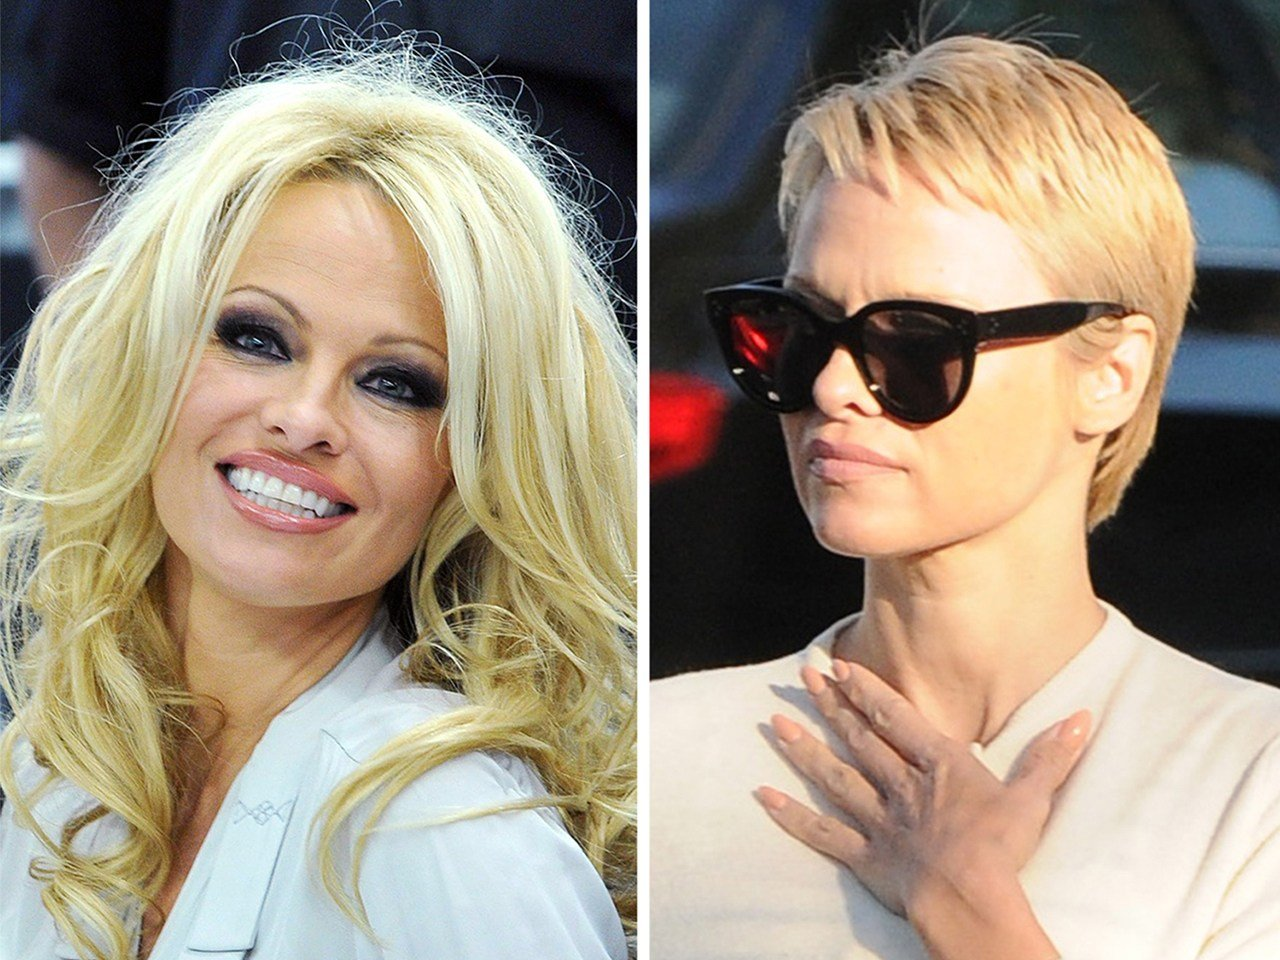 The Best Pamela Anderson Chops Baywatch Hair Into Pixie Cut Pictures